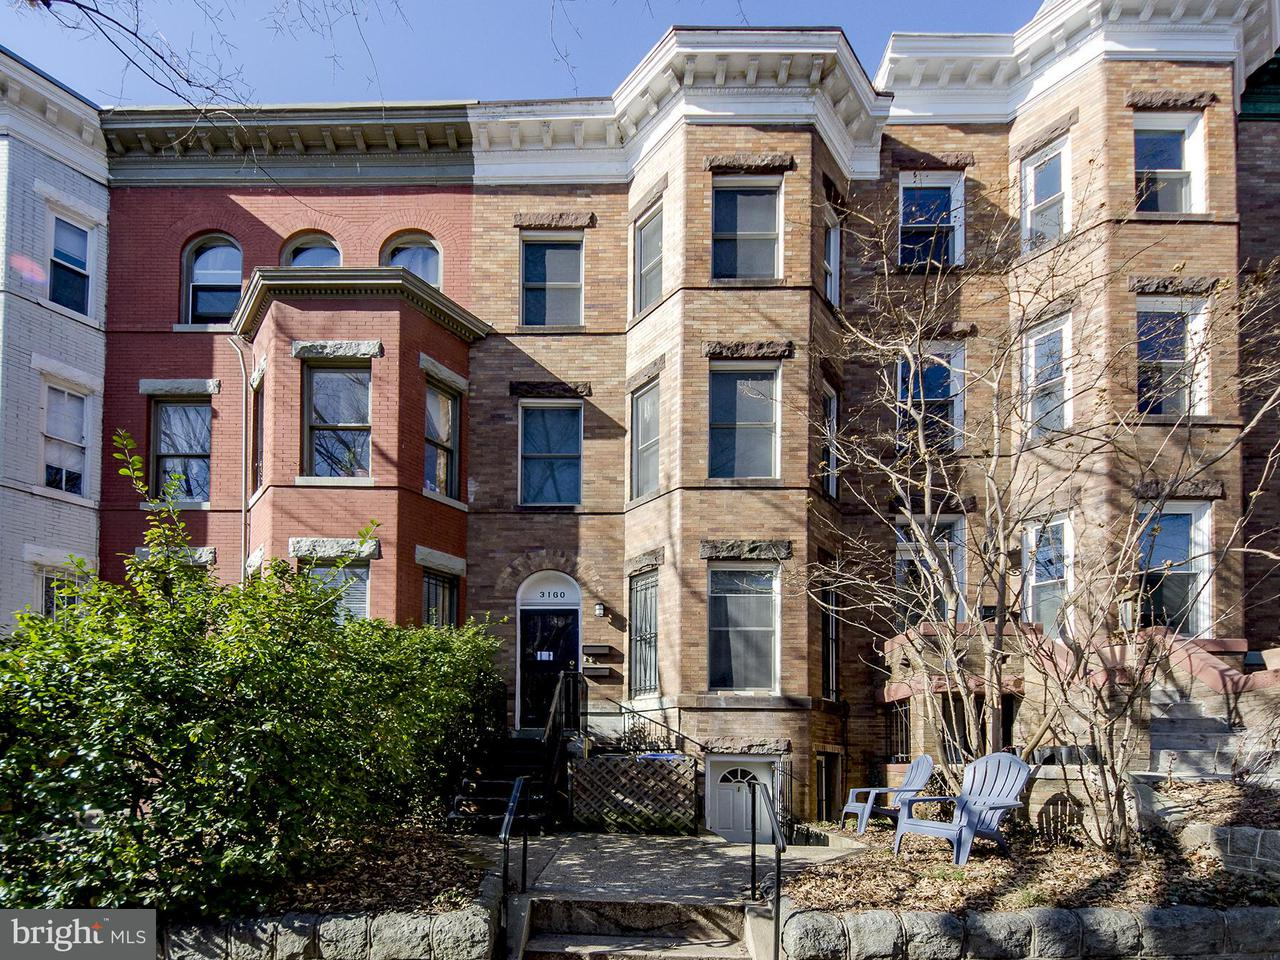 Townhouse for Sale at 3160 18th St Nw 3160 18th St Nw Washington, District Of Columbia 20010 United States